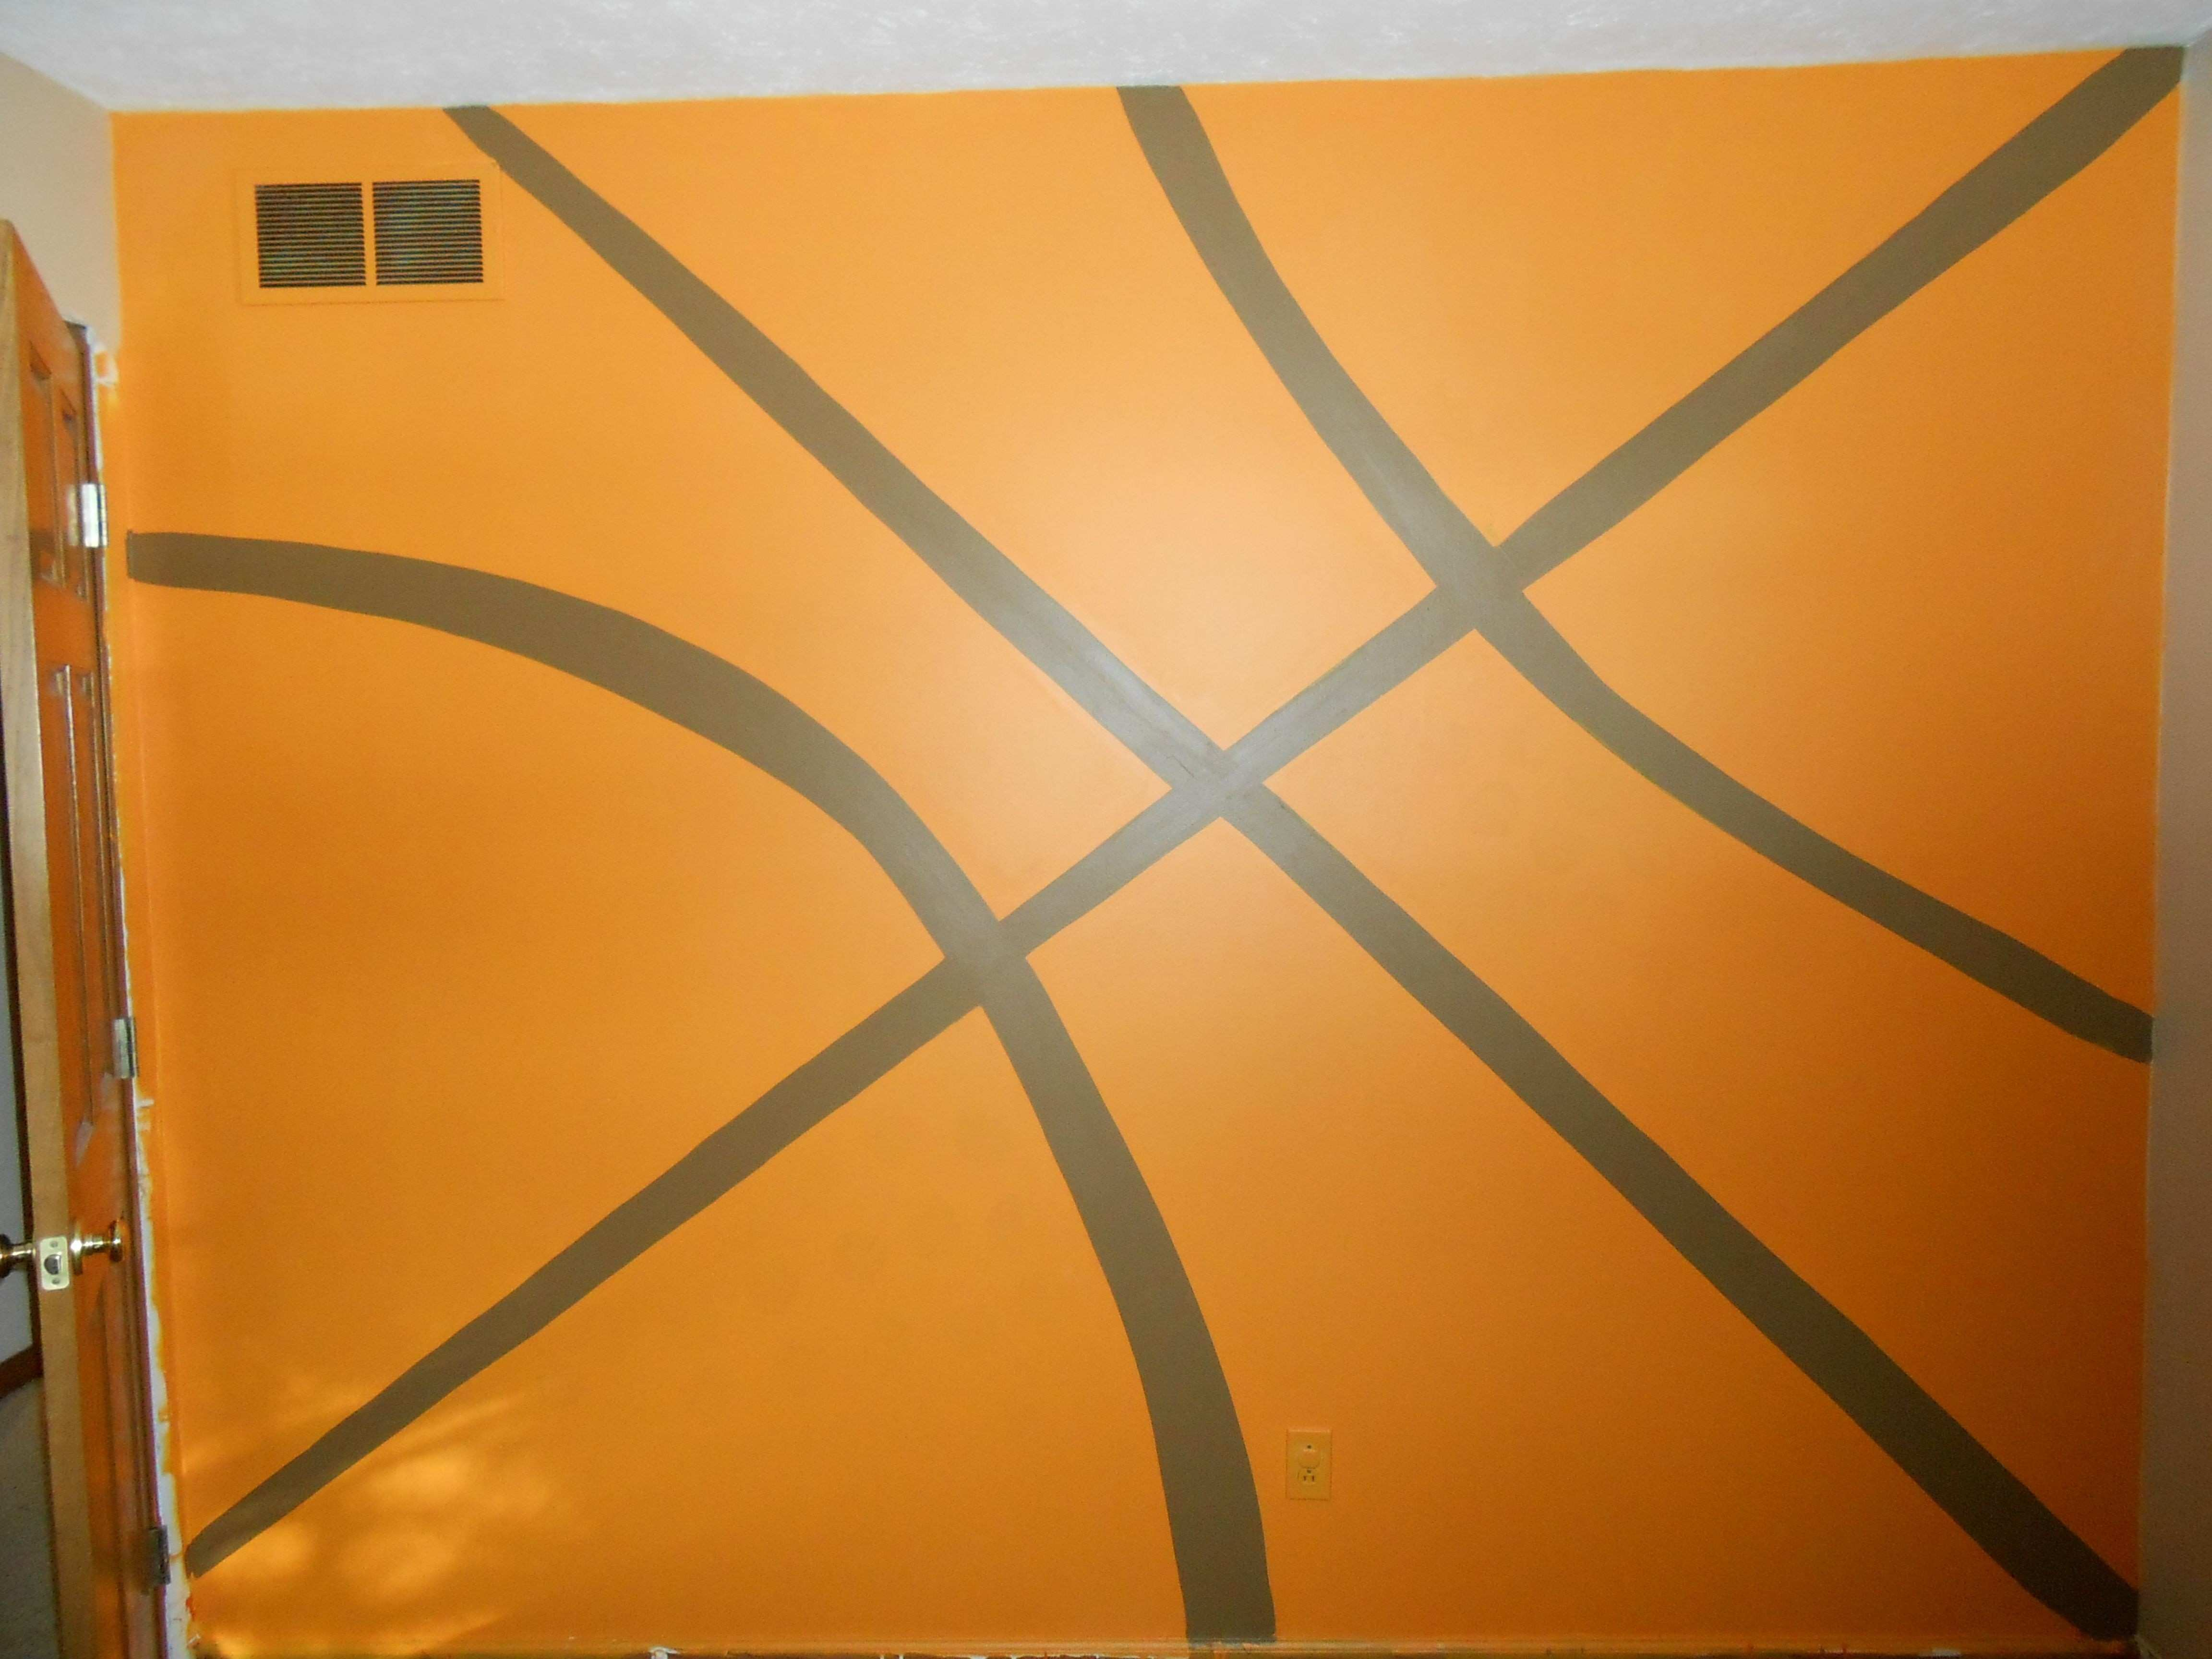 Basketball Wall Luxury Hand Painted Basketball Wall for My son